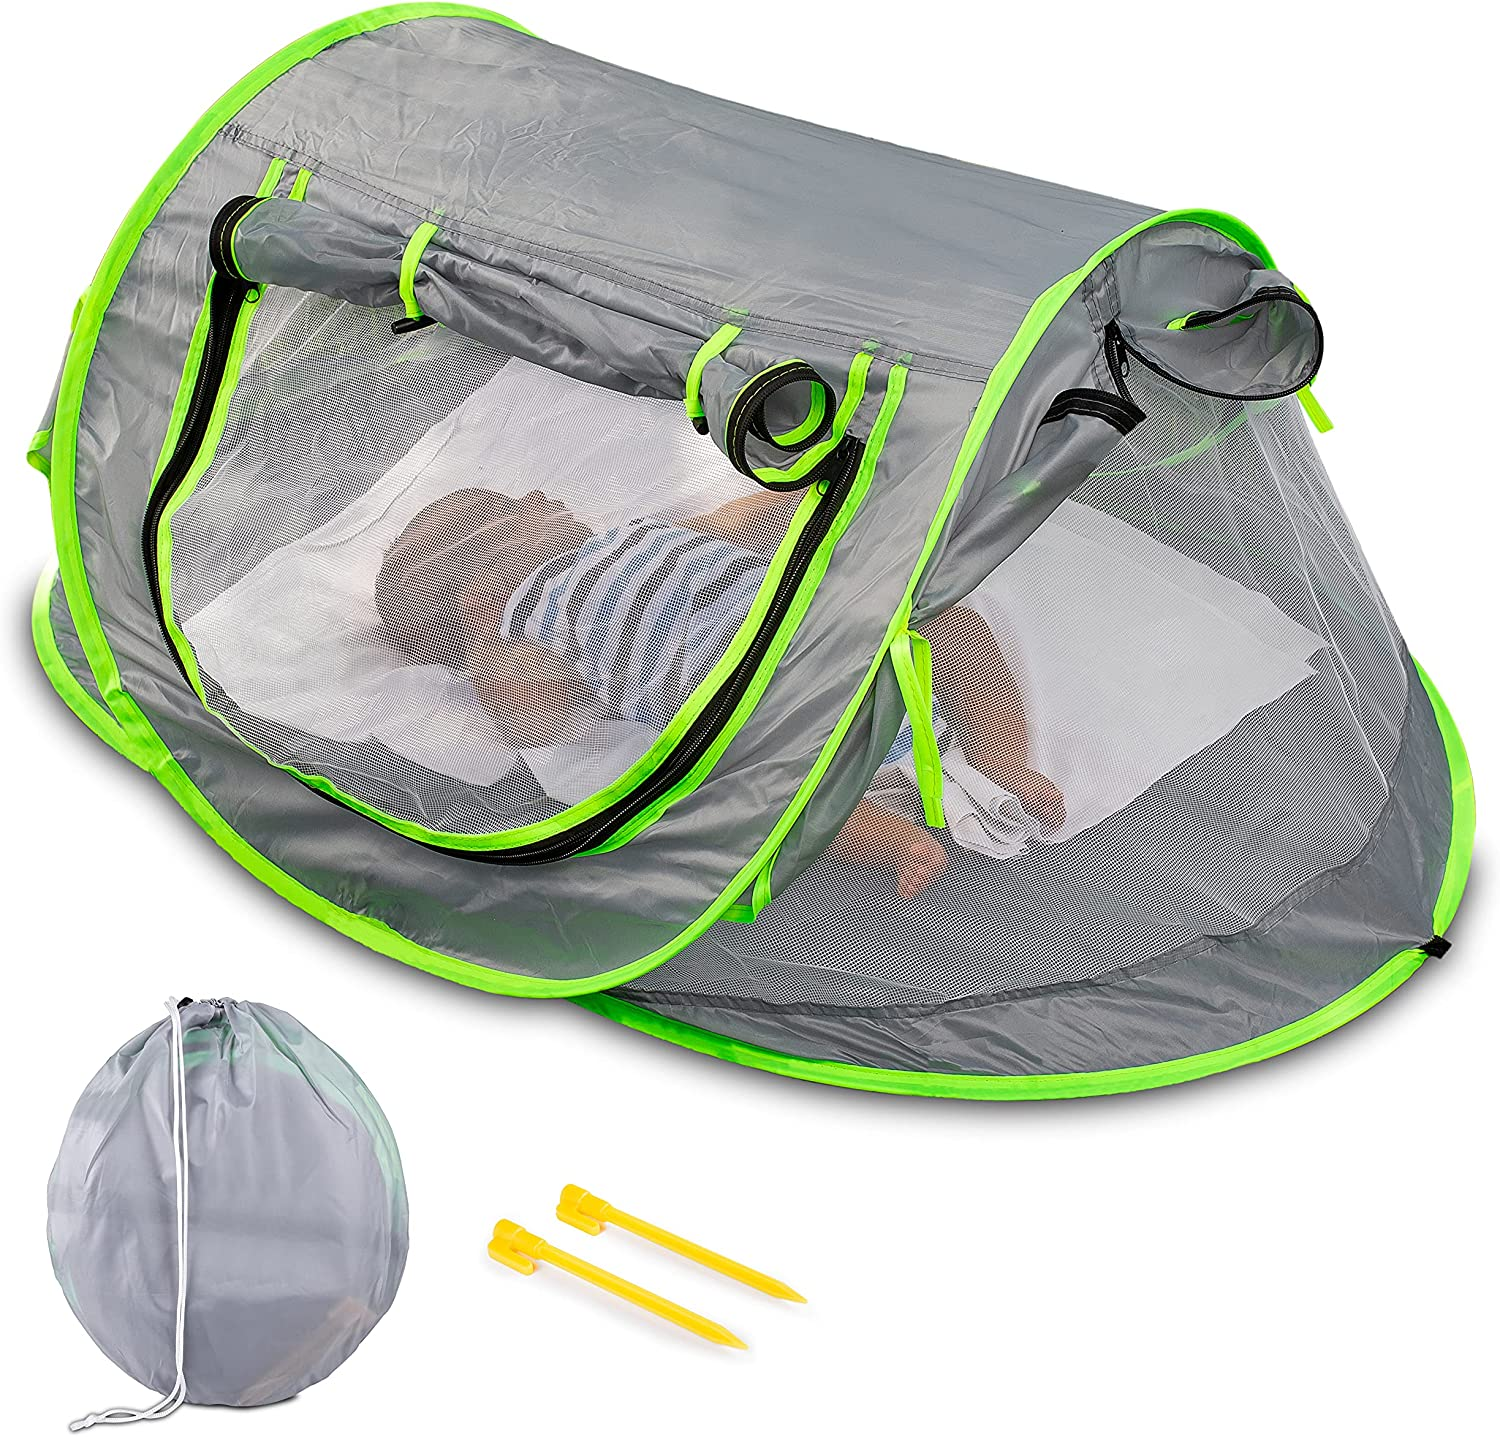 Zento Deals Baby Pop Up Tent - Portable Sunshade Foldable Travel Tent - Baby Camping Bed with Mosquito Net – UV Protection UPF 50+ Sun Shelters for Infants - Sun Shade for Girls Boys